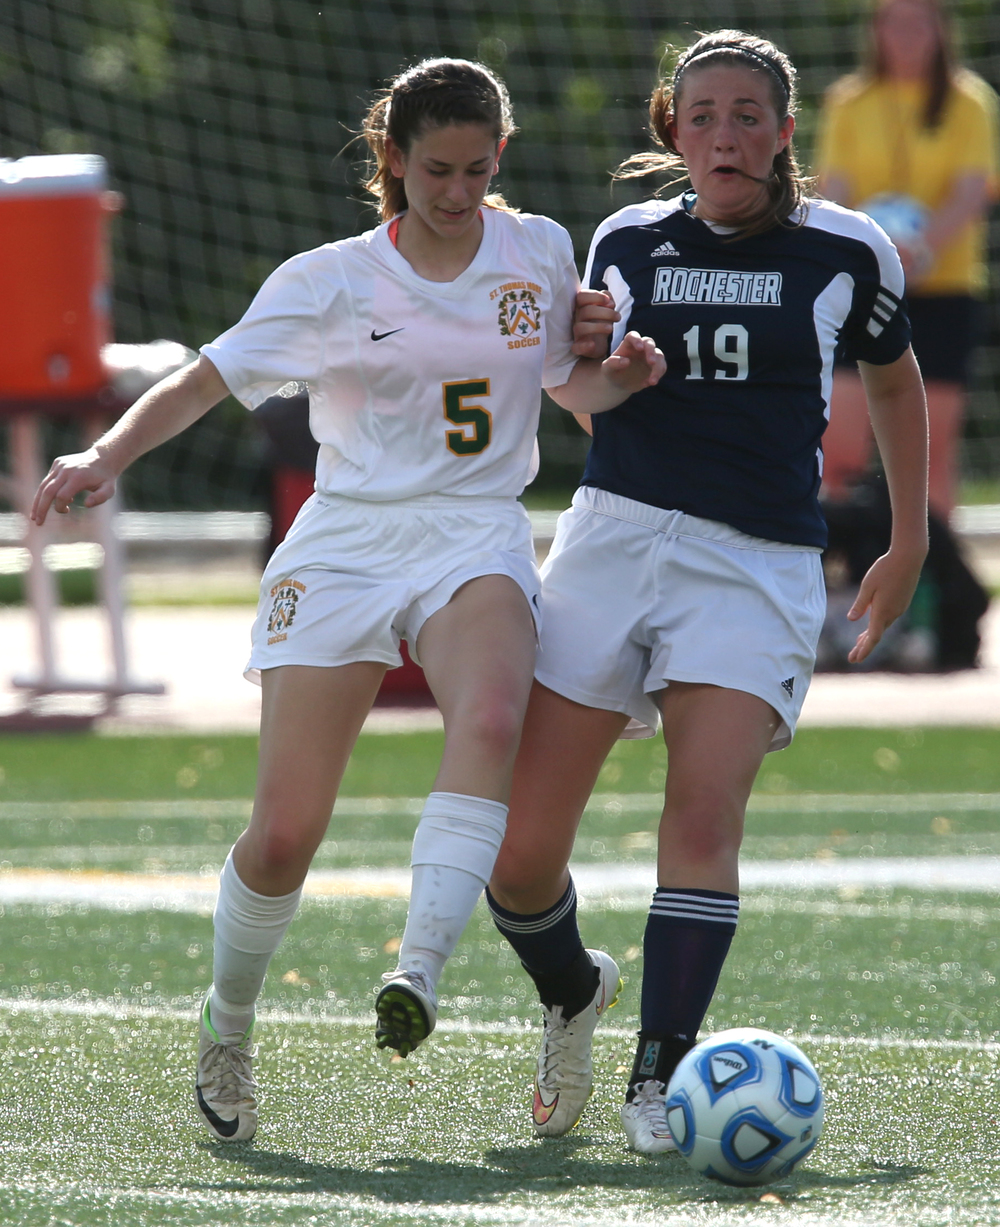 Rochester player Maddie Capps at right and Sabers player Hayes Murray try to get control of the ball during first half action. The Rochester High School Rockets defeated the Champaign St. Thomas More Sabers 3-0 during the state 1A semifinal girls soccer match at North Central College in Naperville on Friday evening, May 29, 2015. David Spencer/The State Journal-Register